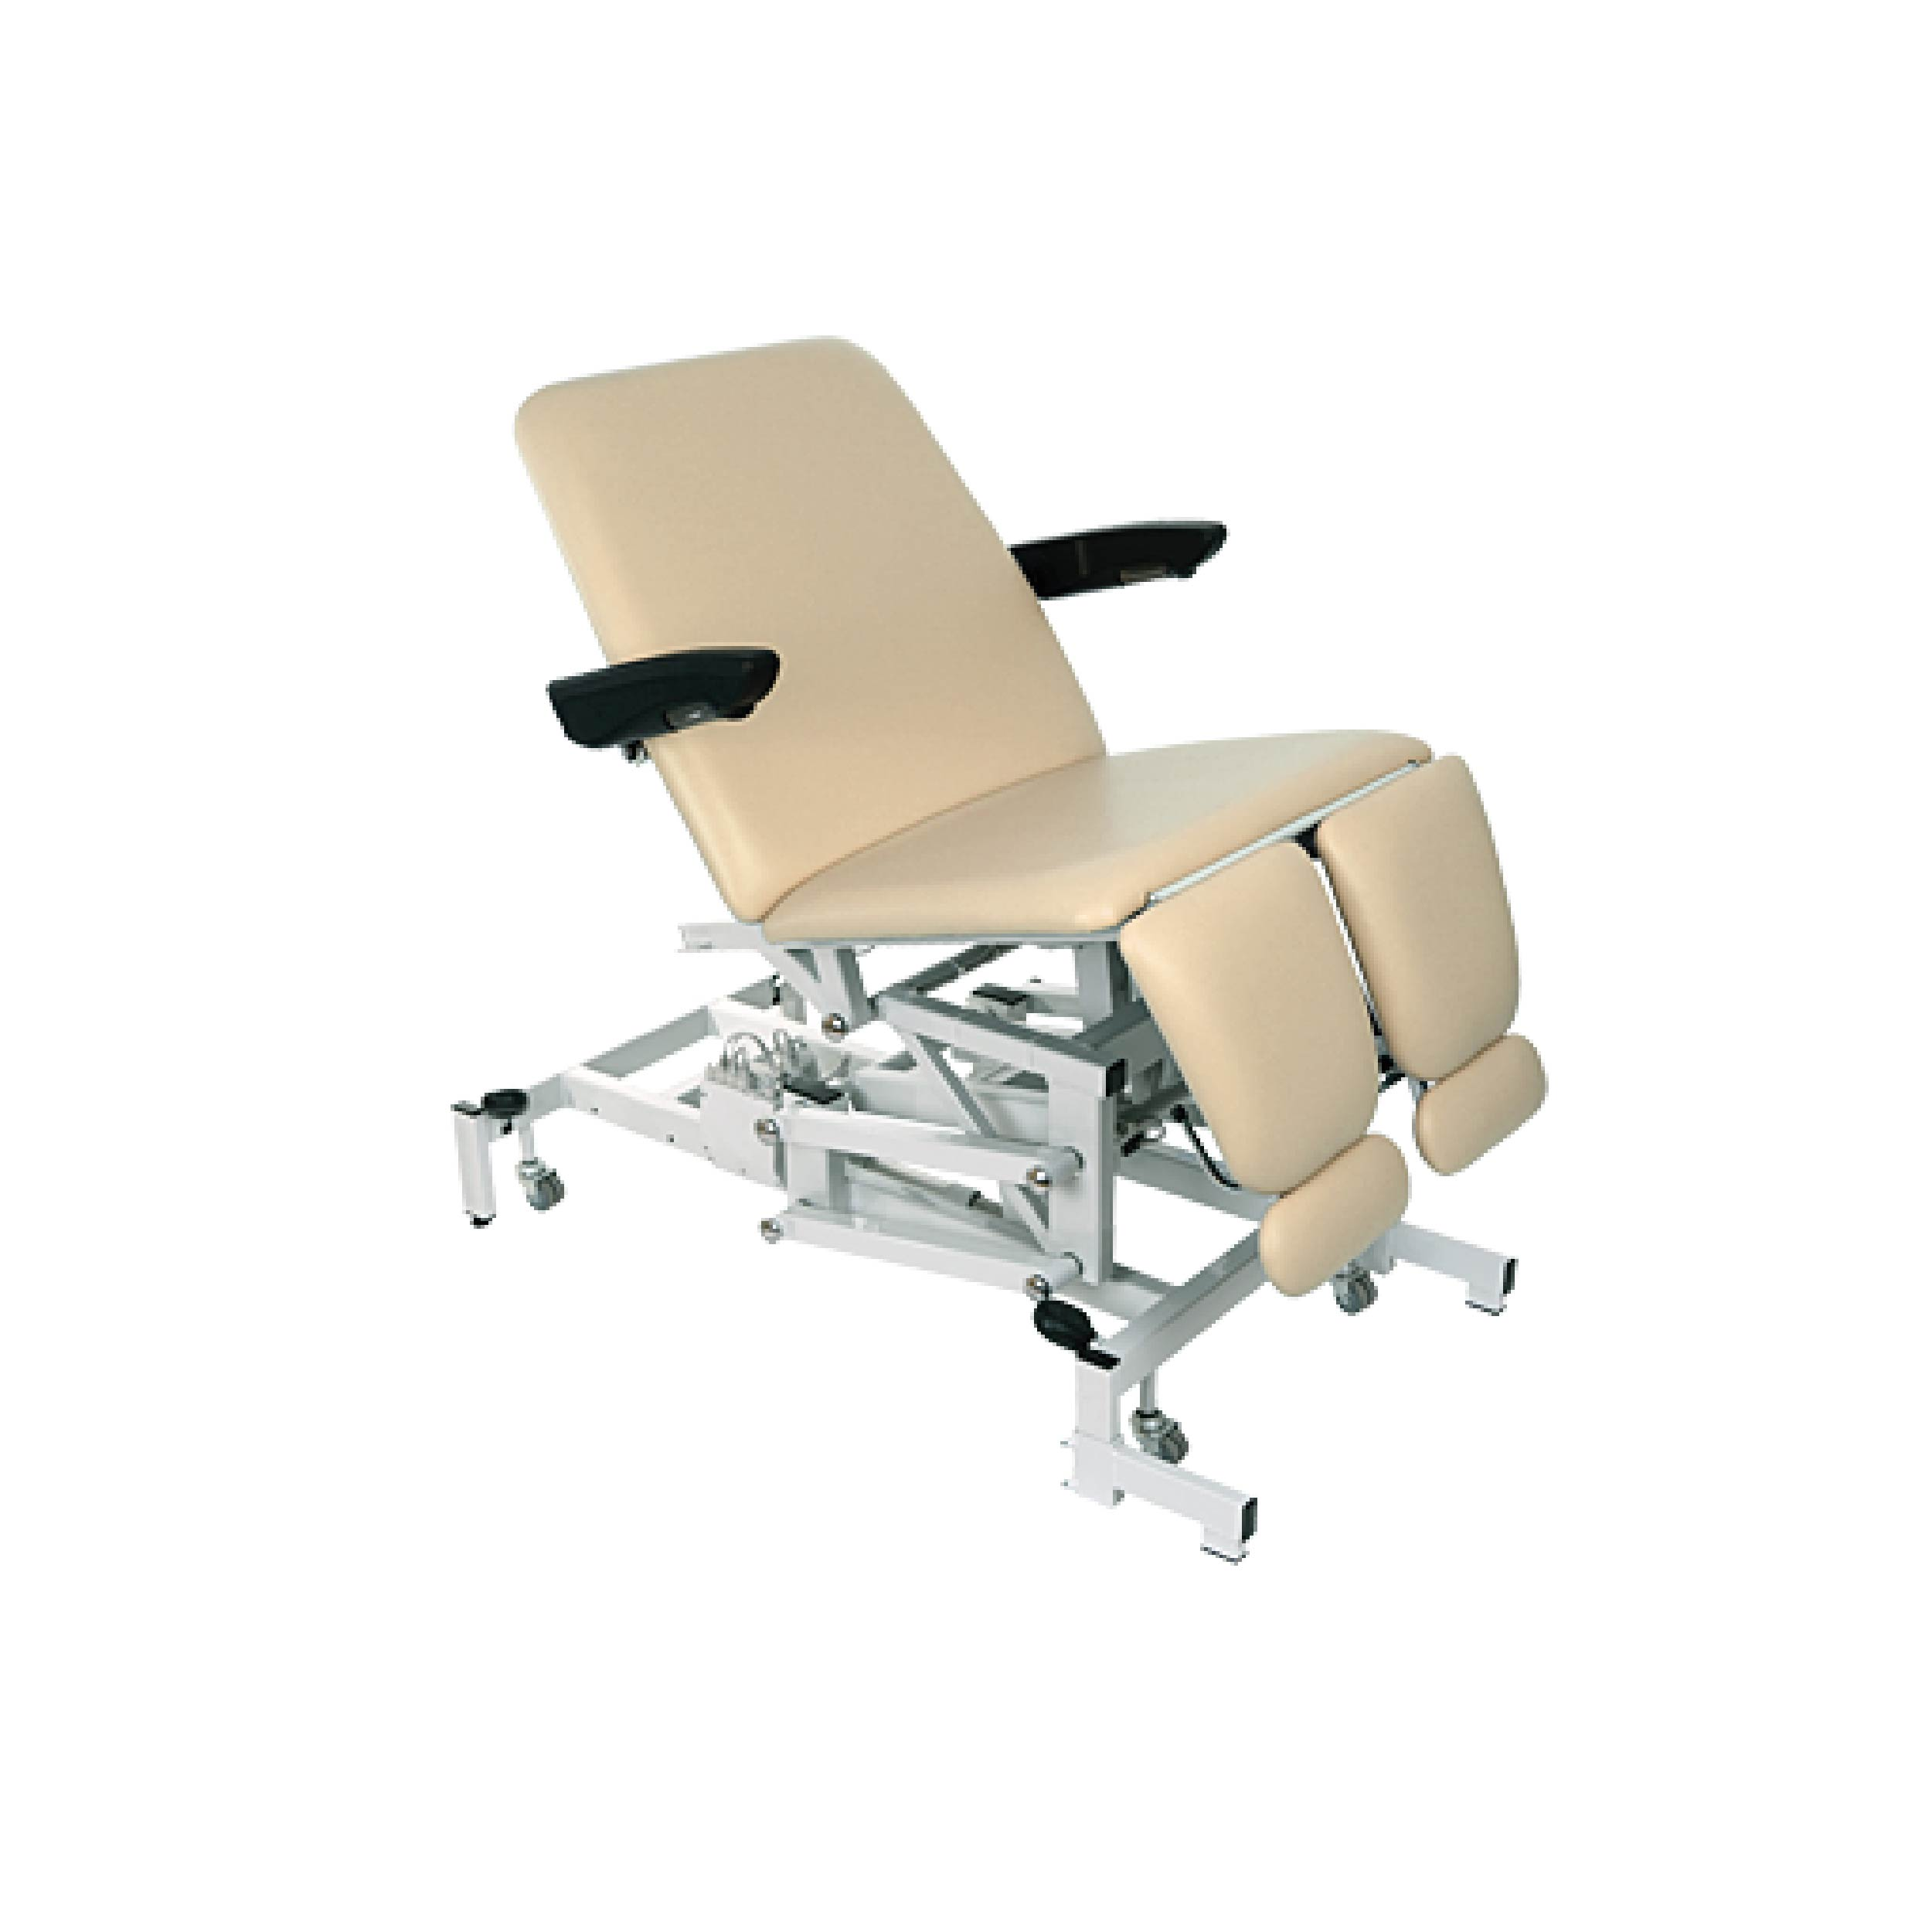 Bariatric podiatry chair with split legs (electric with tilt & motor back)